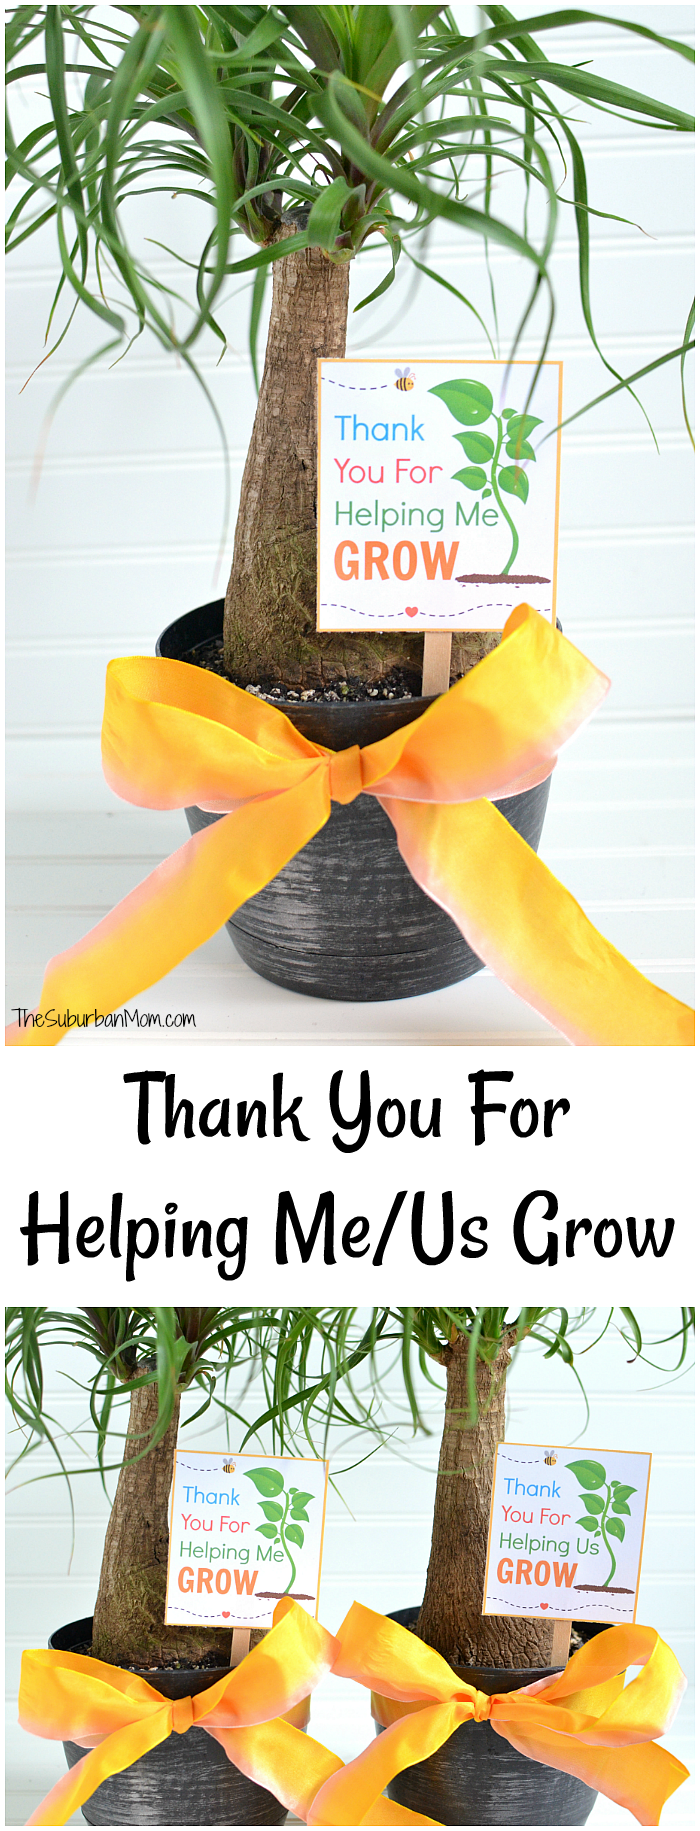 image regarding Thanks for Helping Me Grow Free Printable identify Thank Yourself For Encouraging Me Mature Absolutely free Printable (Us Model Far too!)